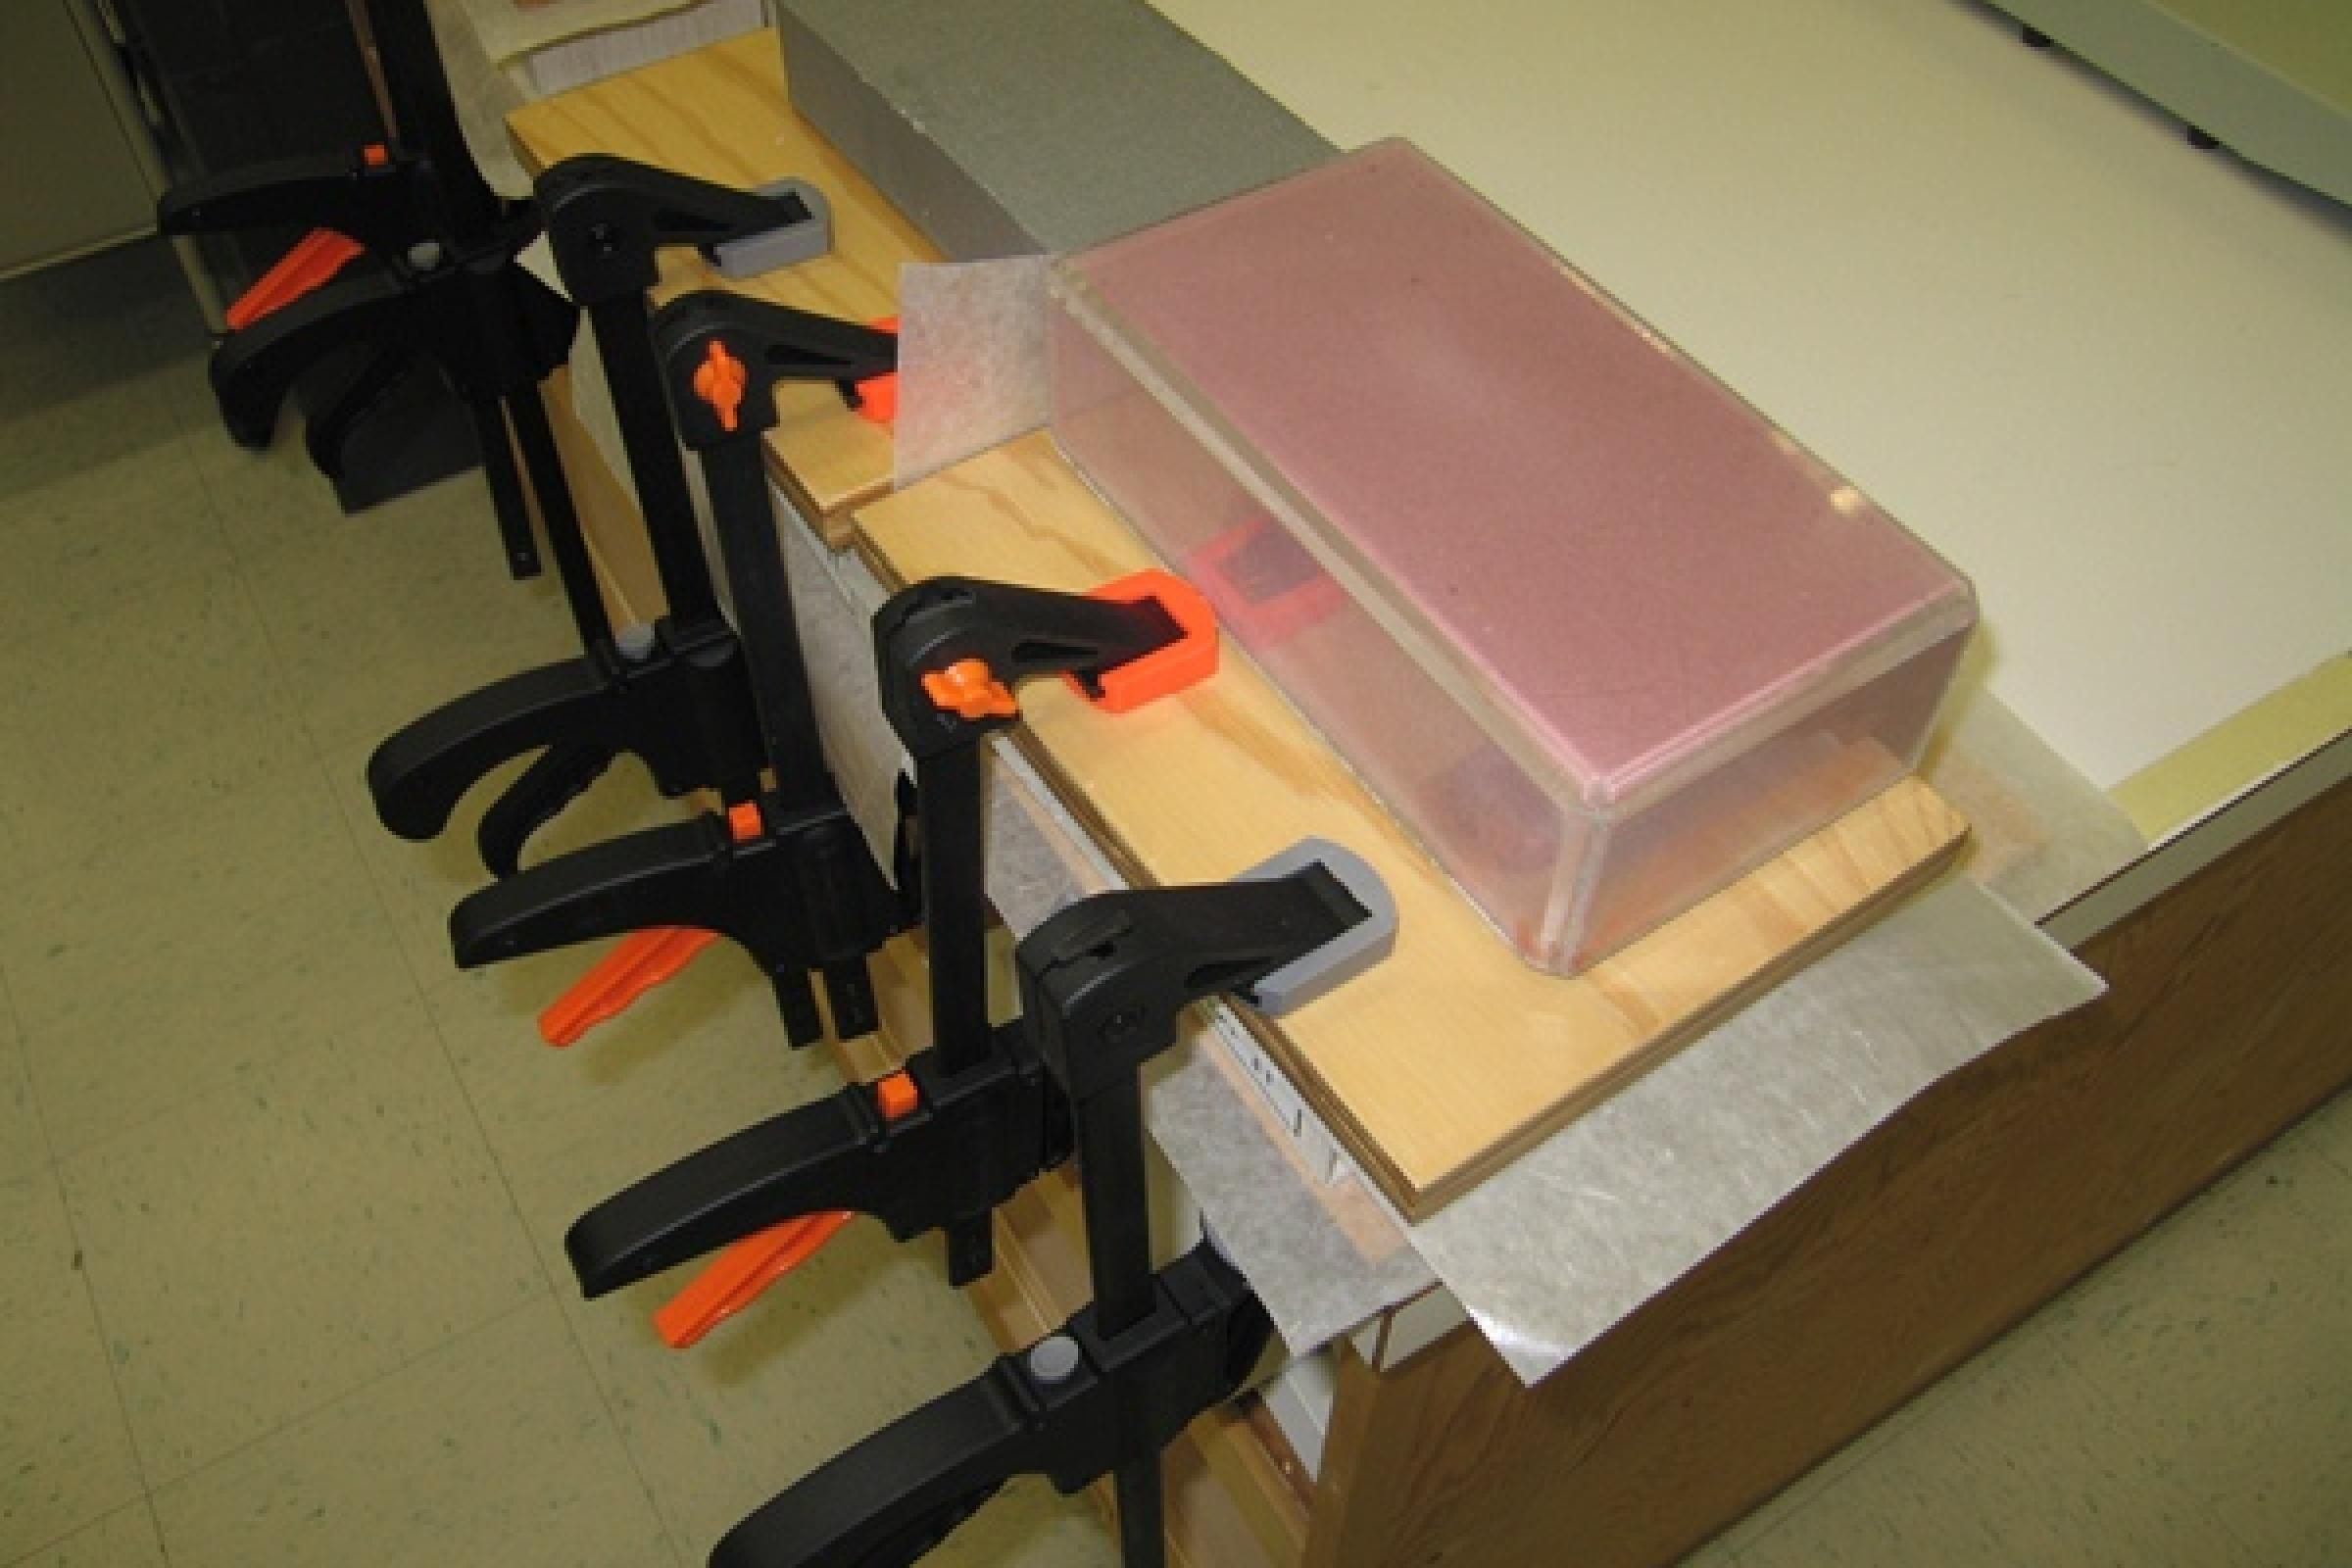 Clamped boxes drying under weights